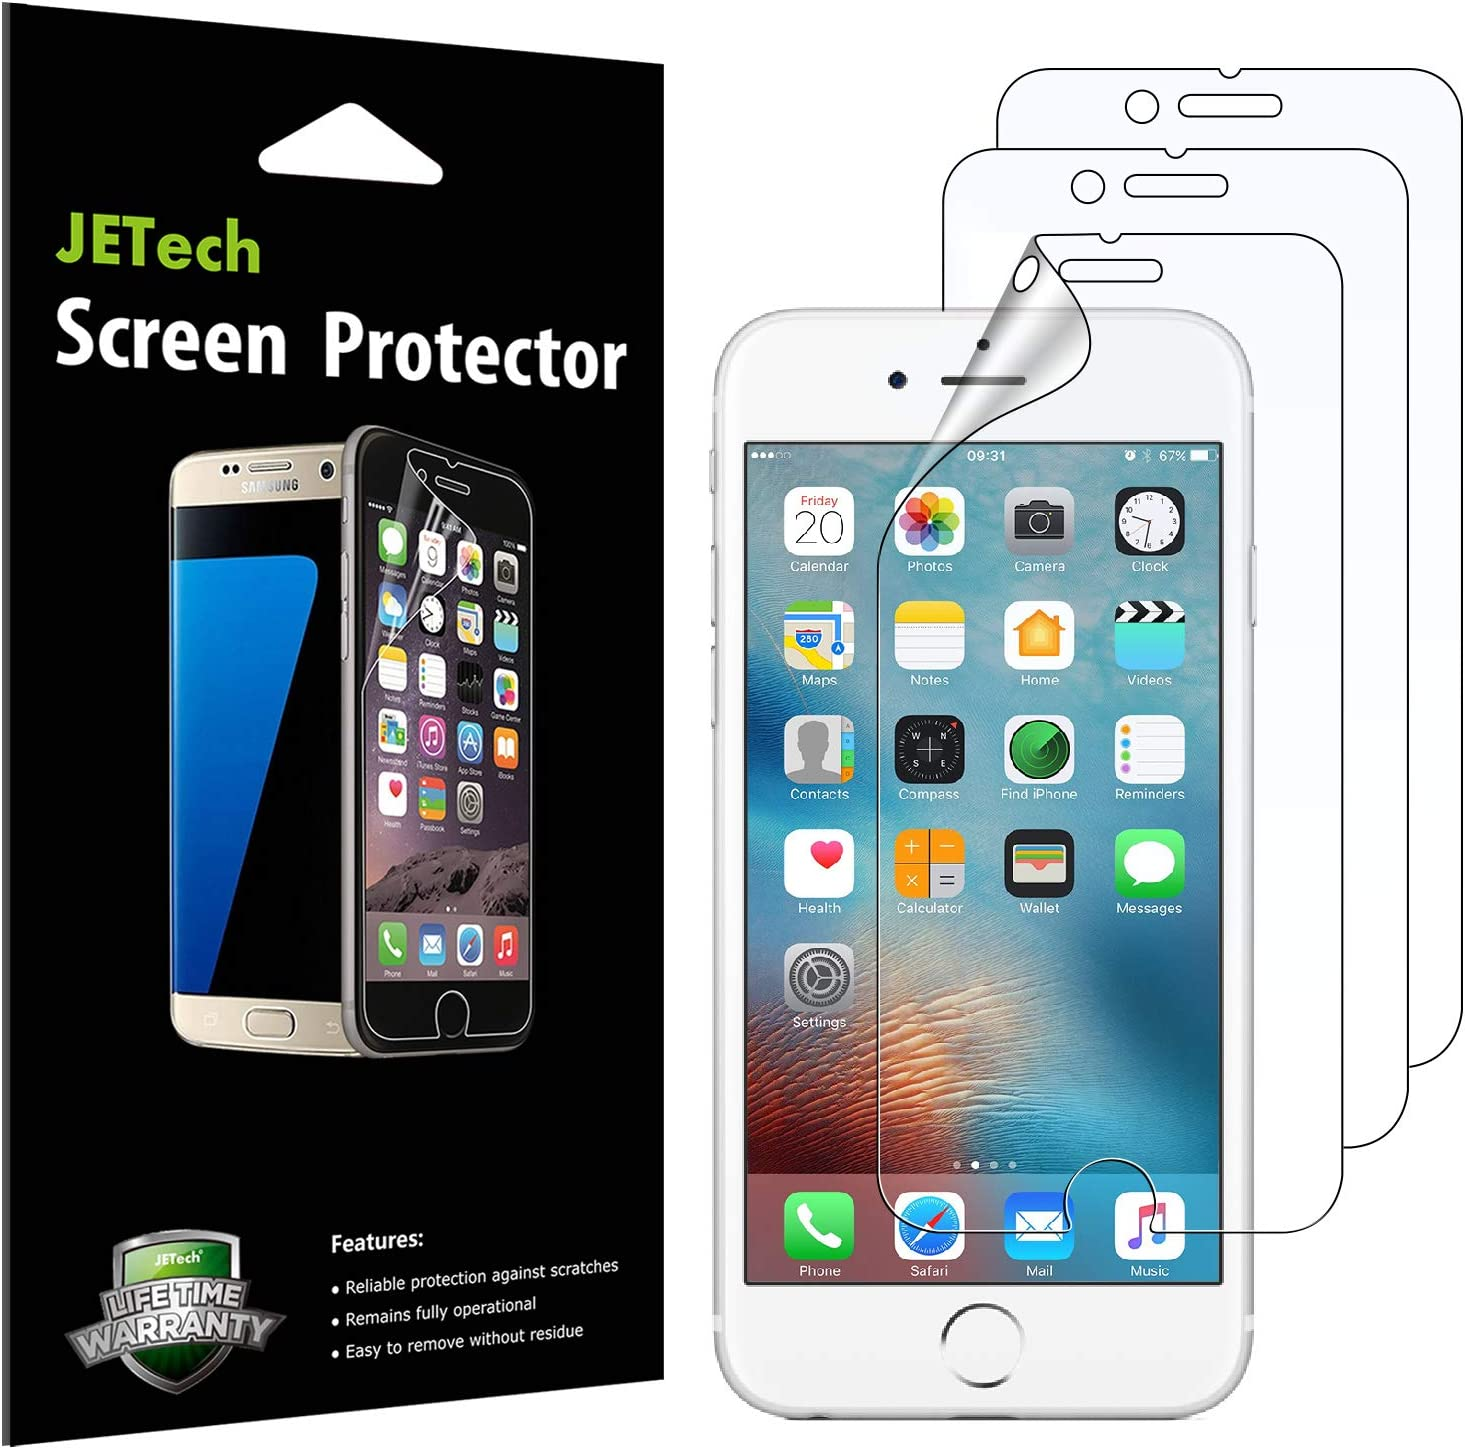 JETech Screen Protector for iPhone 6s and iPhone 6, PET Film, 3-Pack